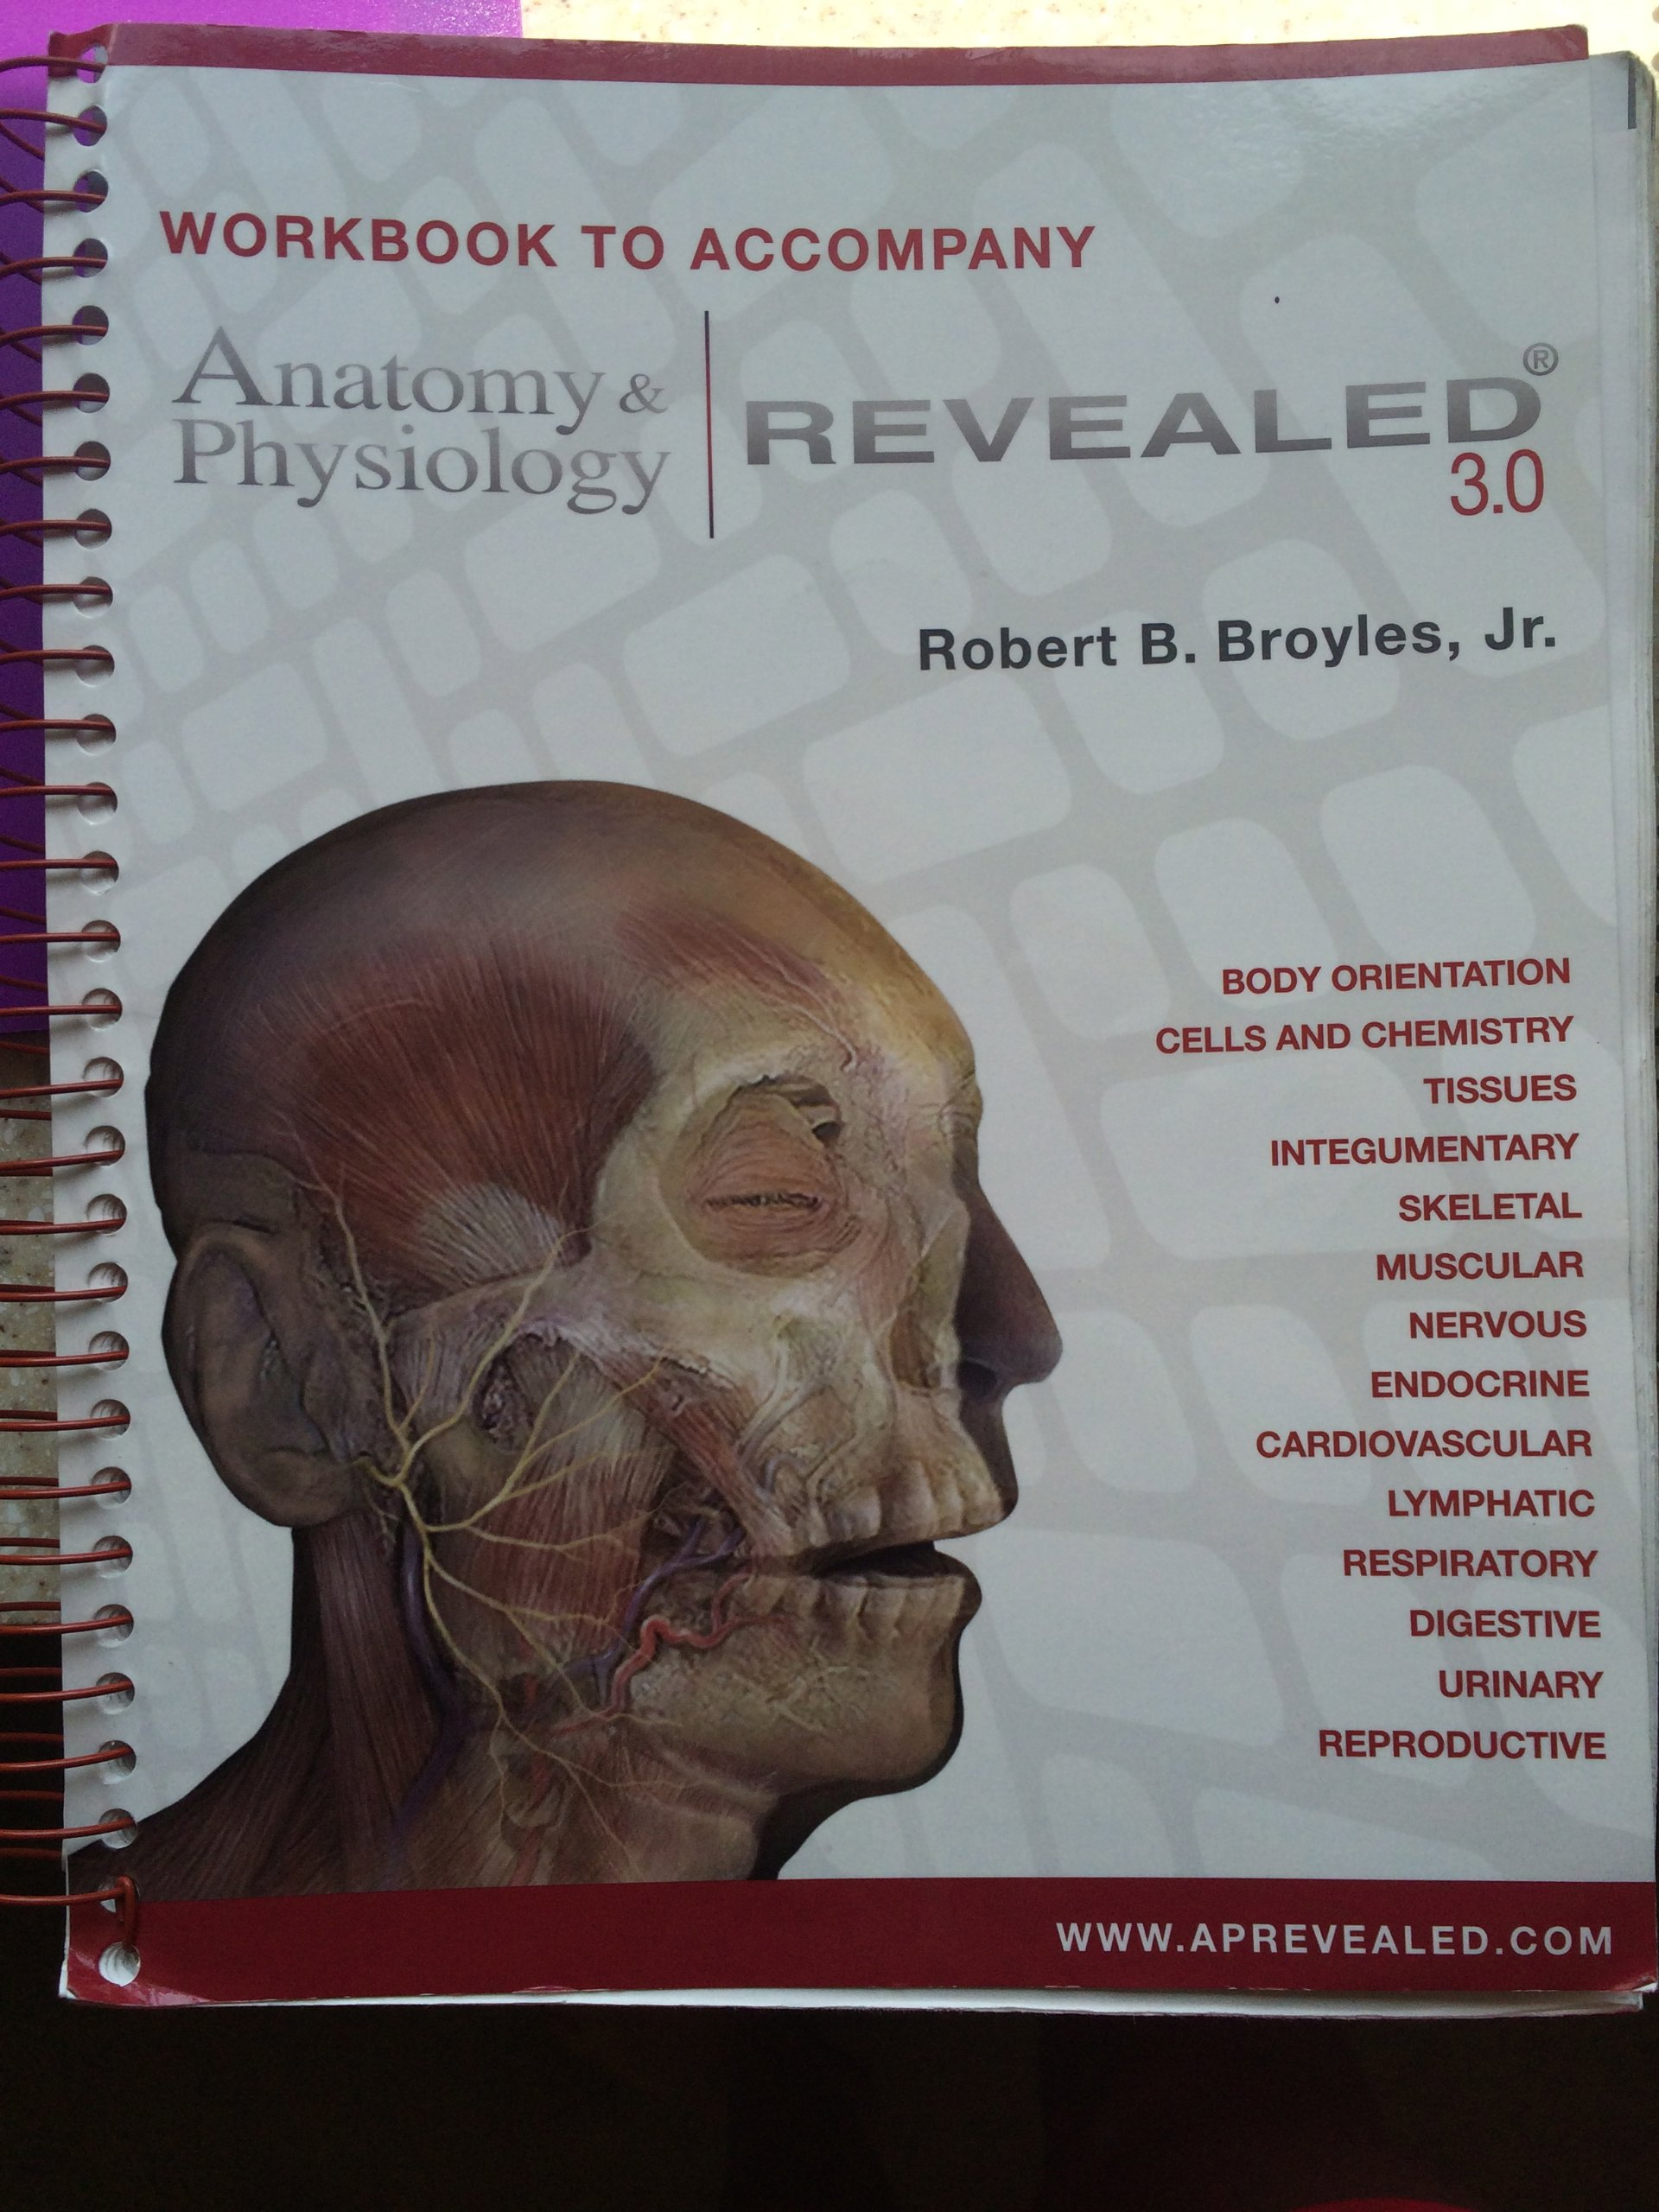 Workbook to Accompany Anatomy & Physiology Revealed 3.0: aa ...